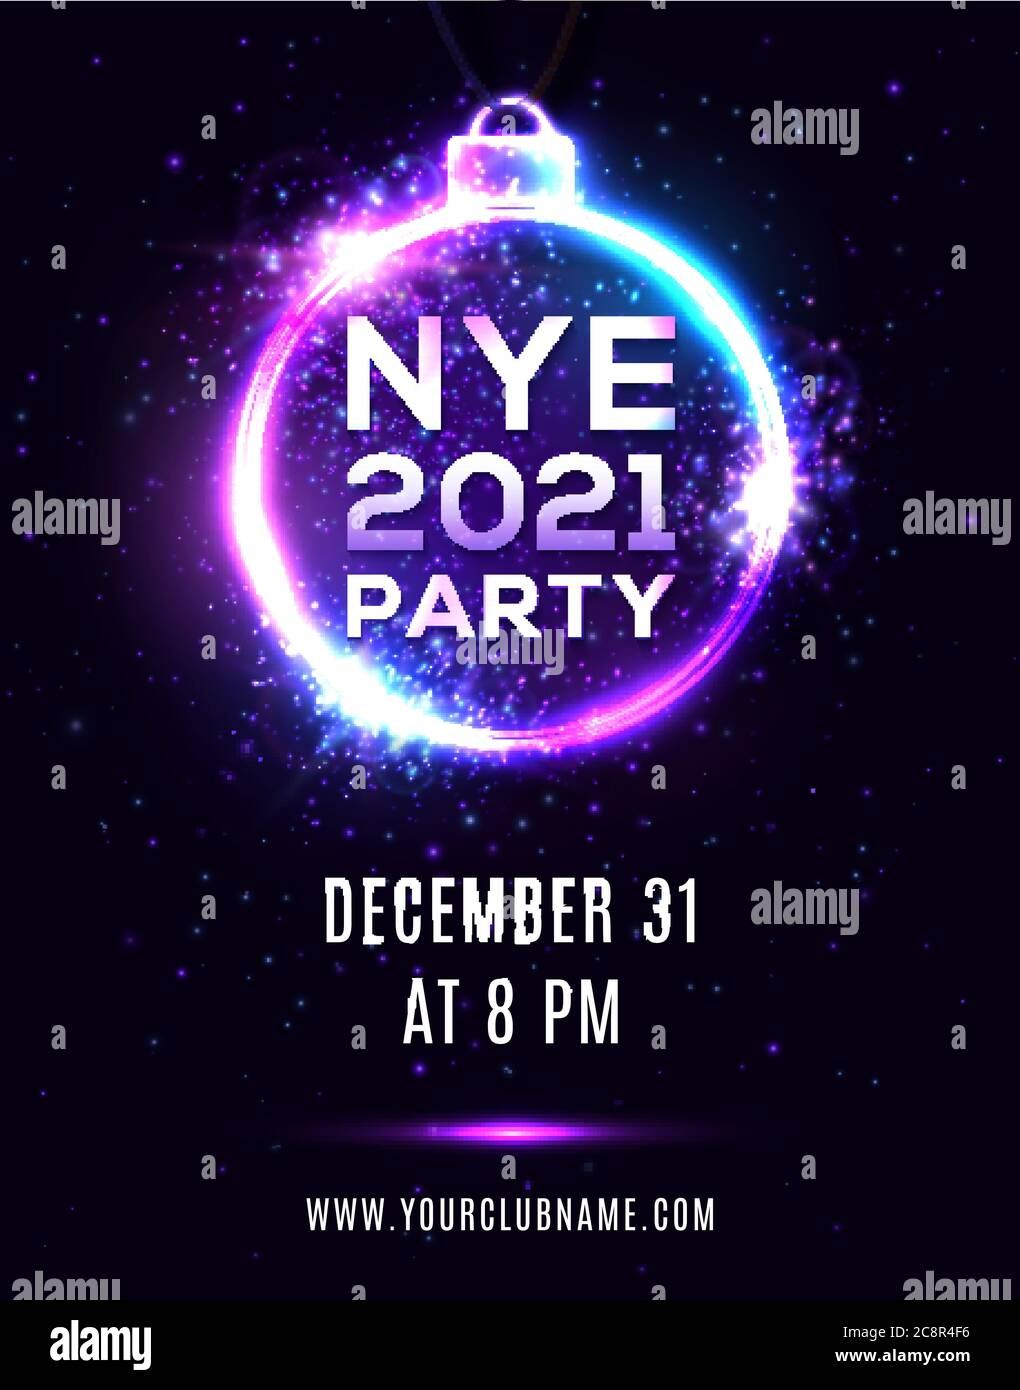 New Year Eve 11 party poster on dark blue background. NYE